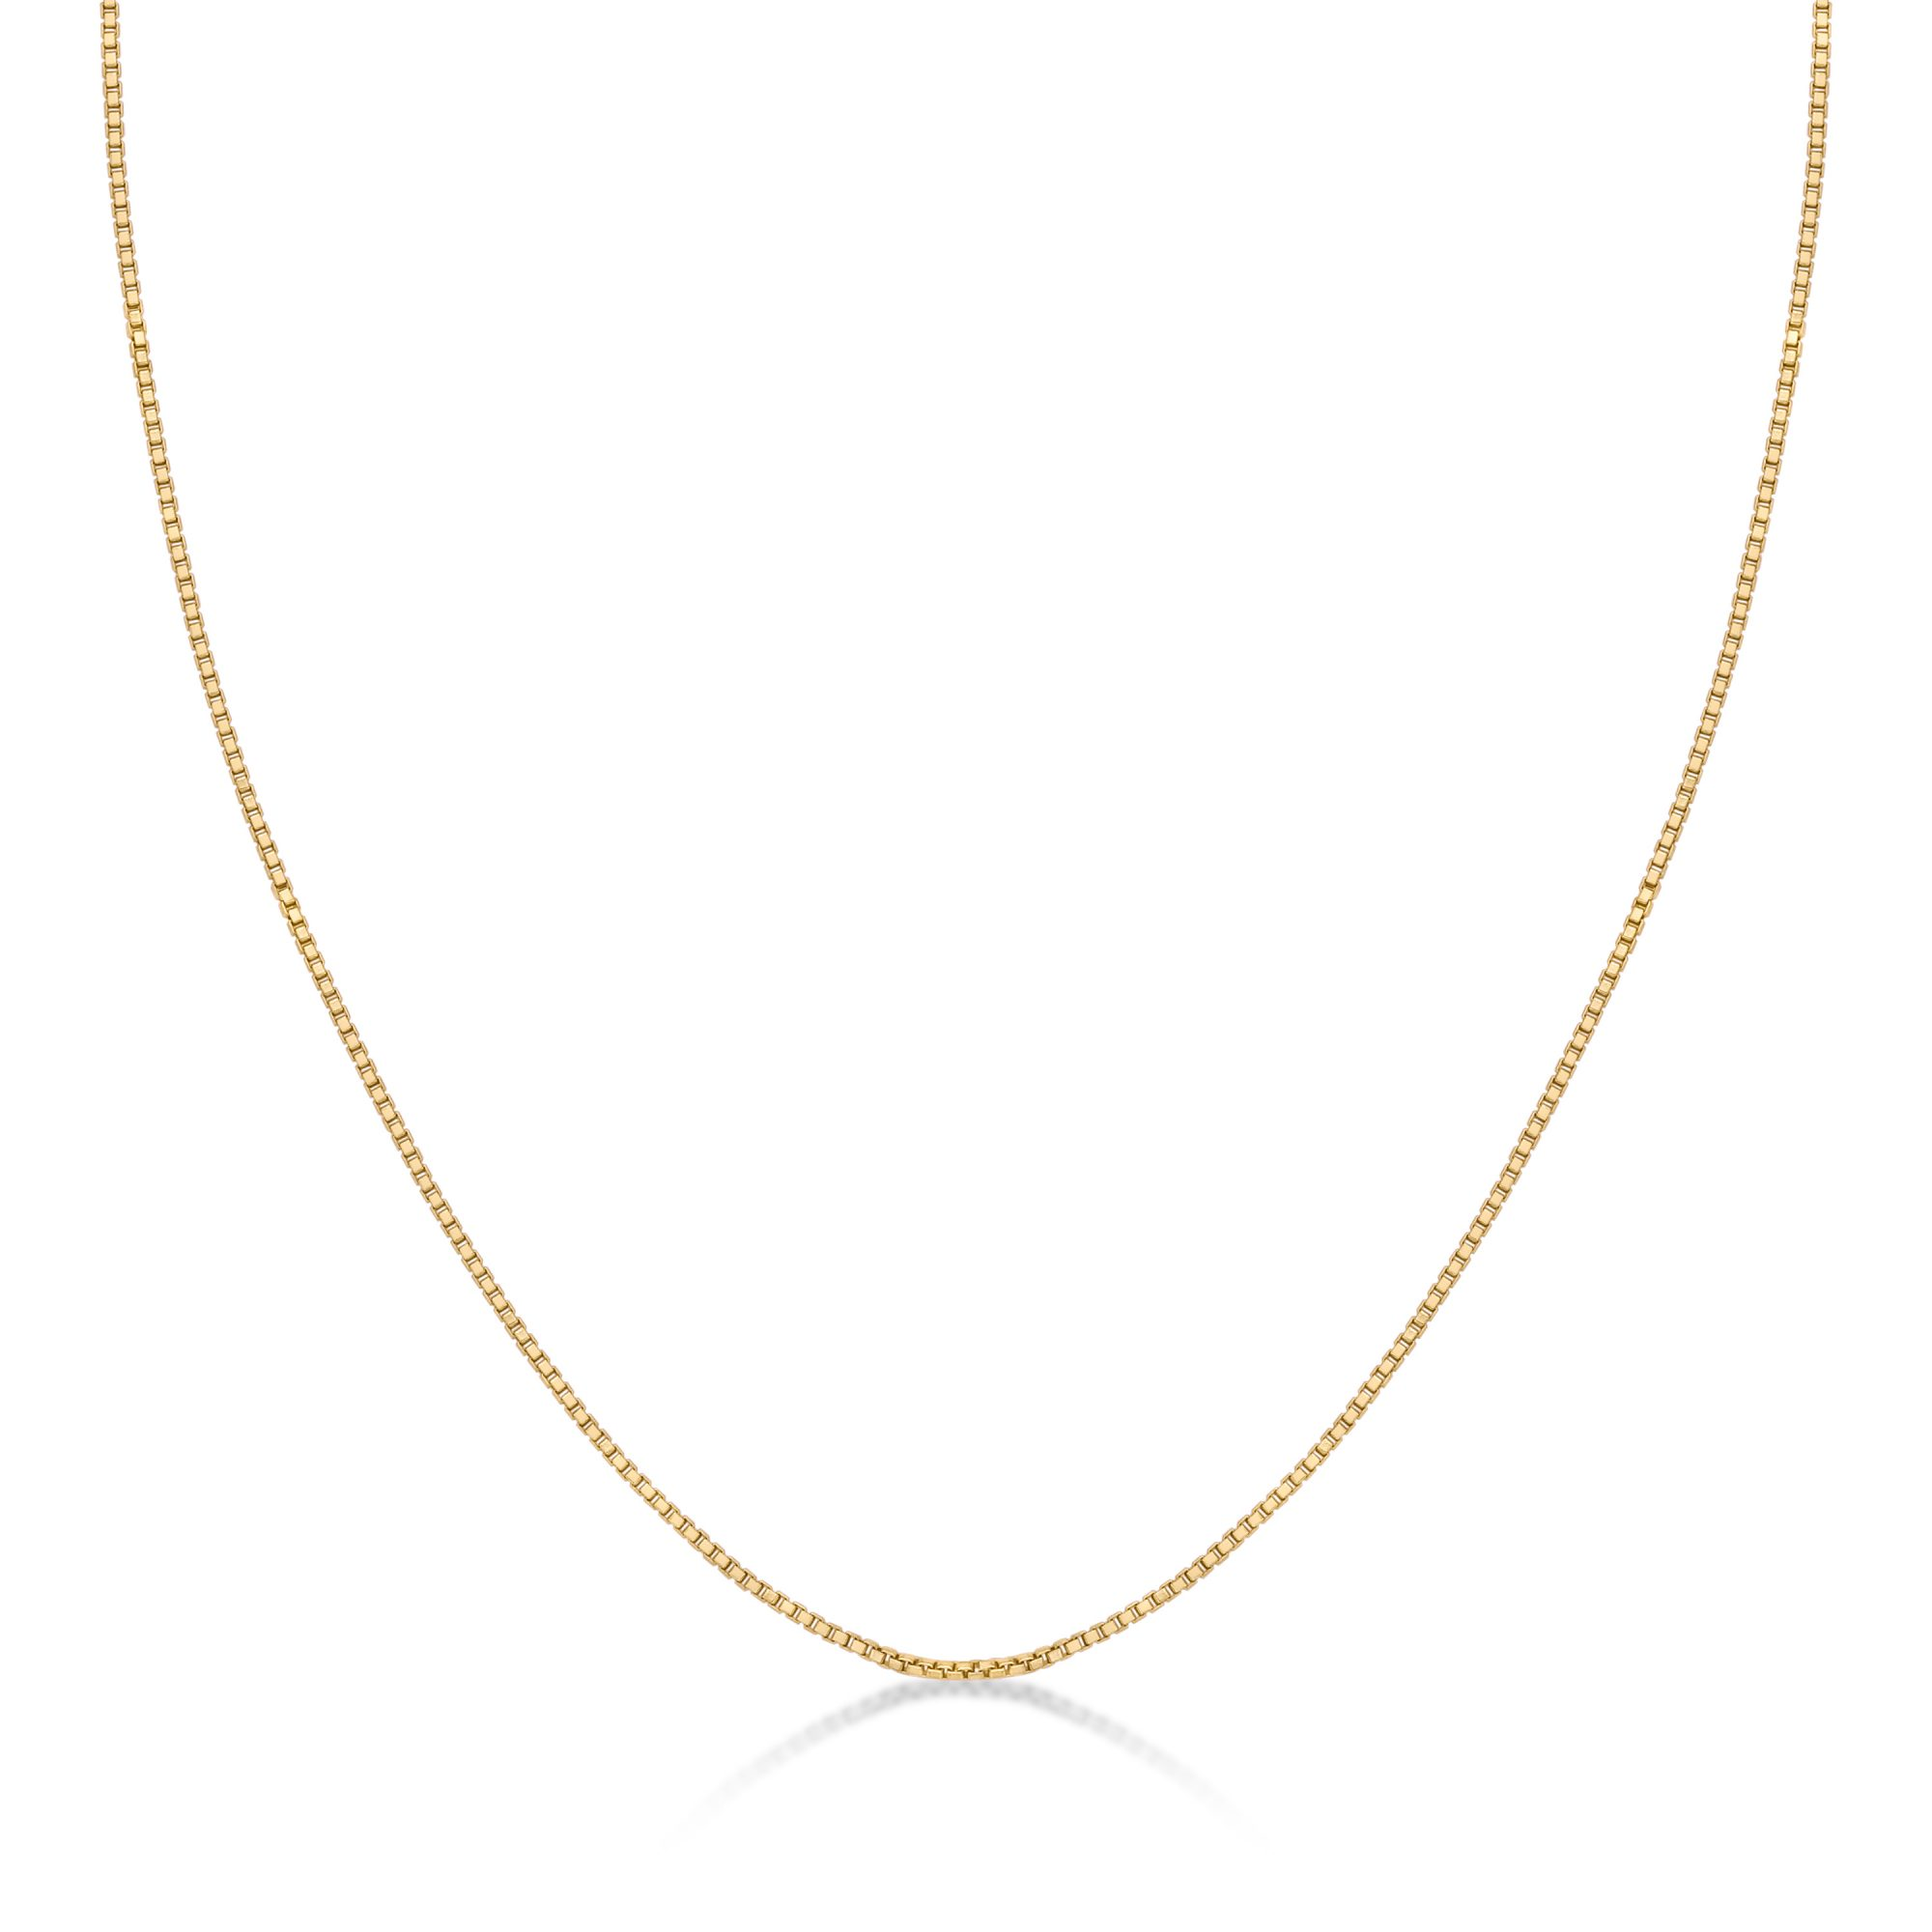 10 Karat Yellow Gold Replacement 0.6 MM Box Chain - 18 inch with Spring Ring Clasp